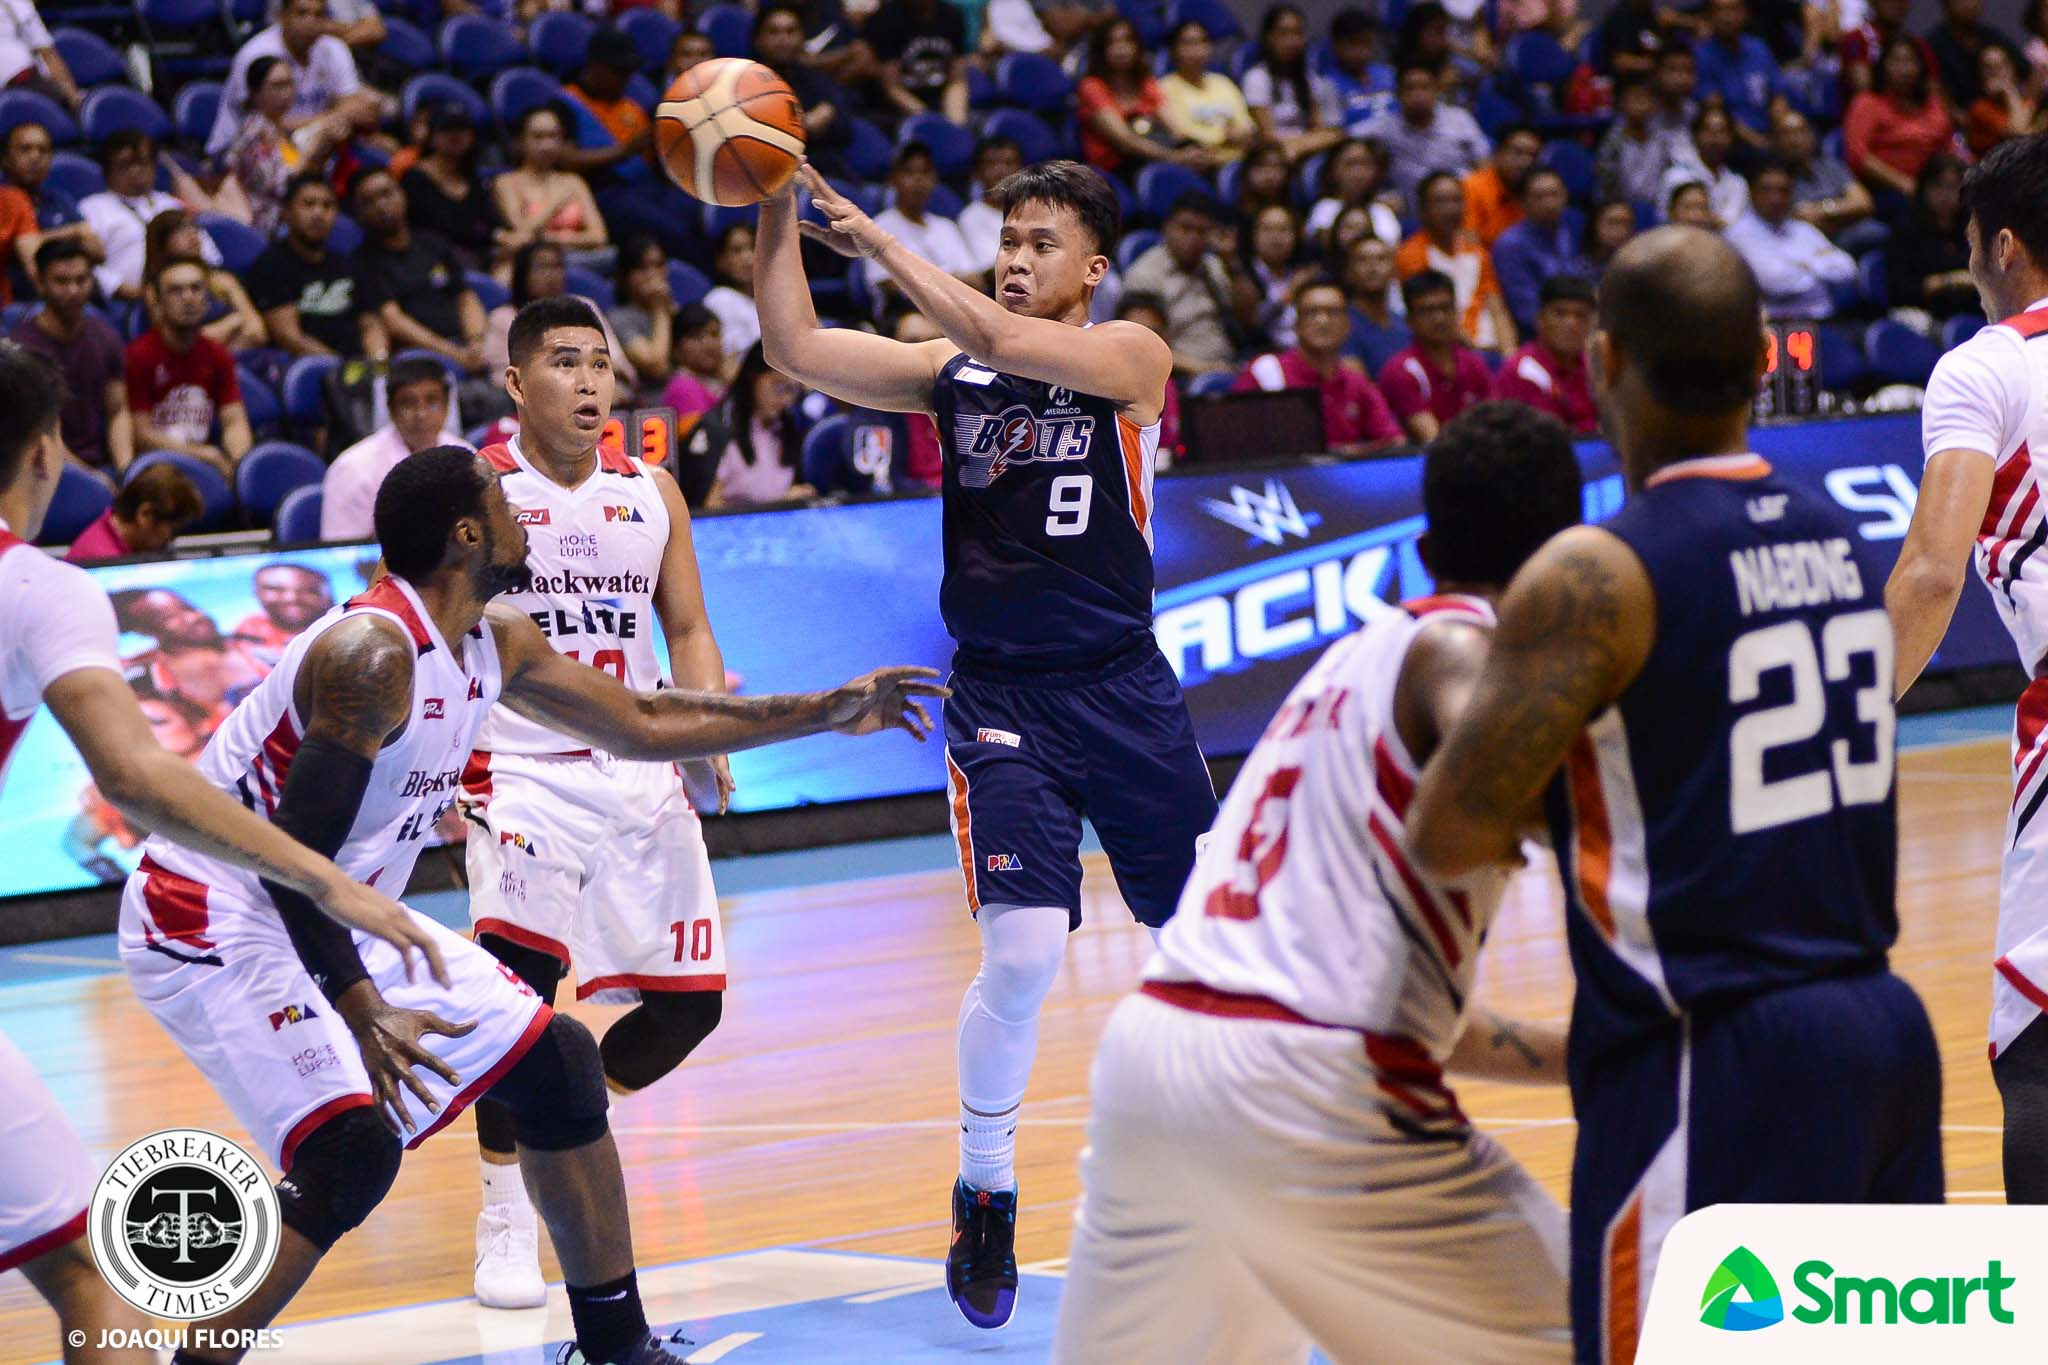 Tiebreaker Times More mature Baser Amer ready to lead Meralco to championship Basketball News PBA  PBA Season 42 Meralco Bolts Baser Amer 2017 PBA Governors Cup